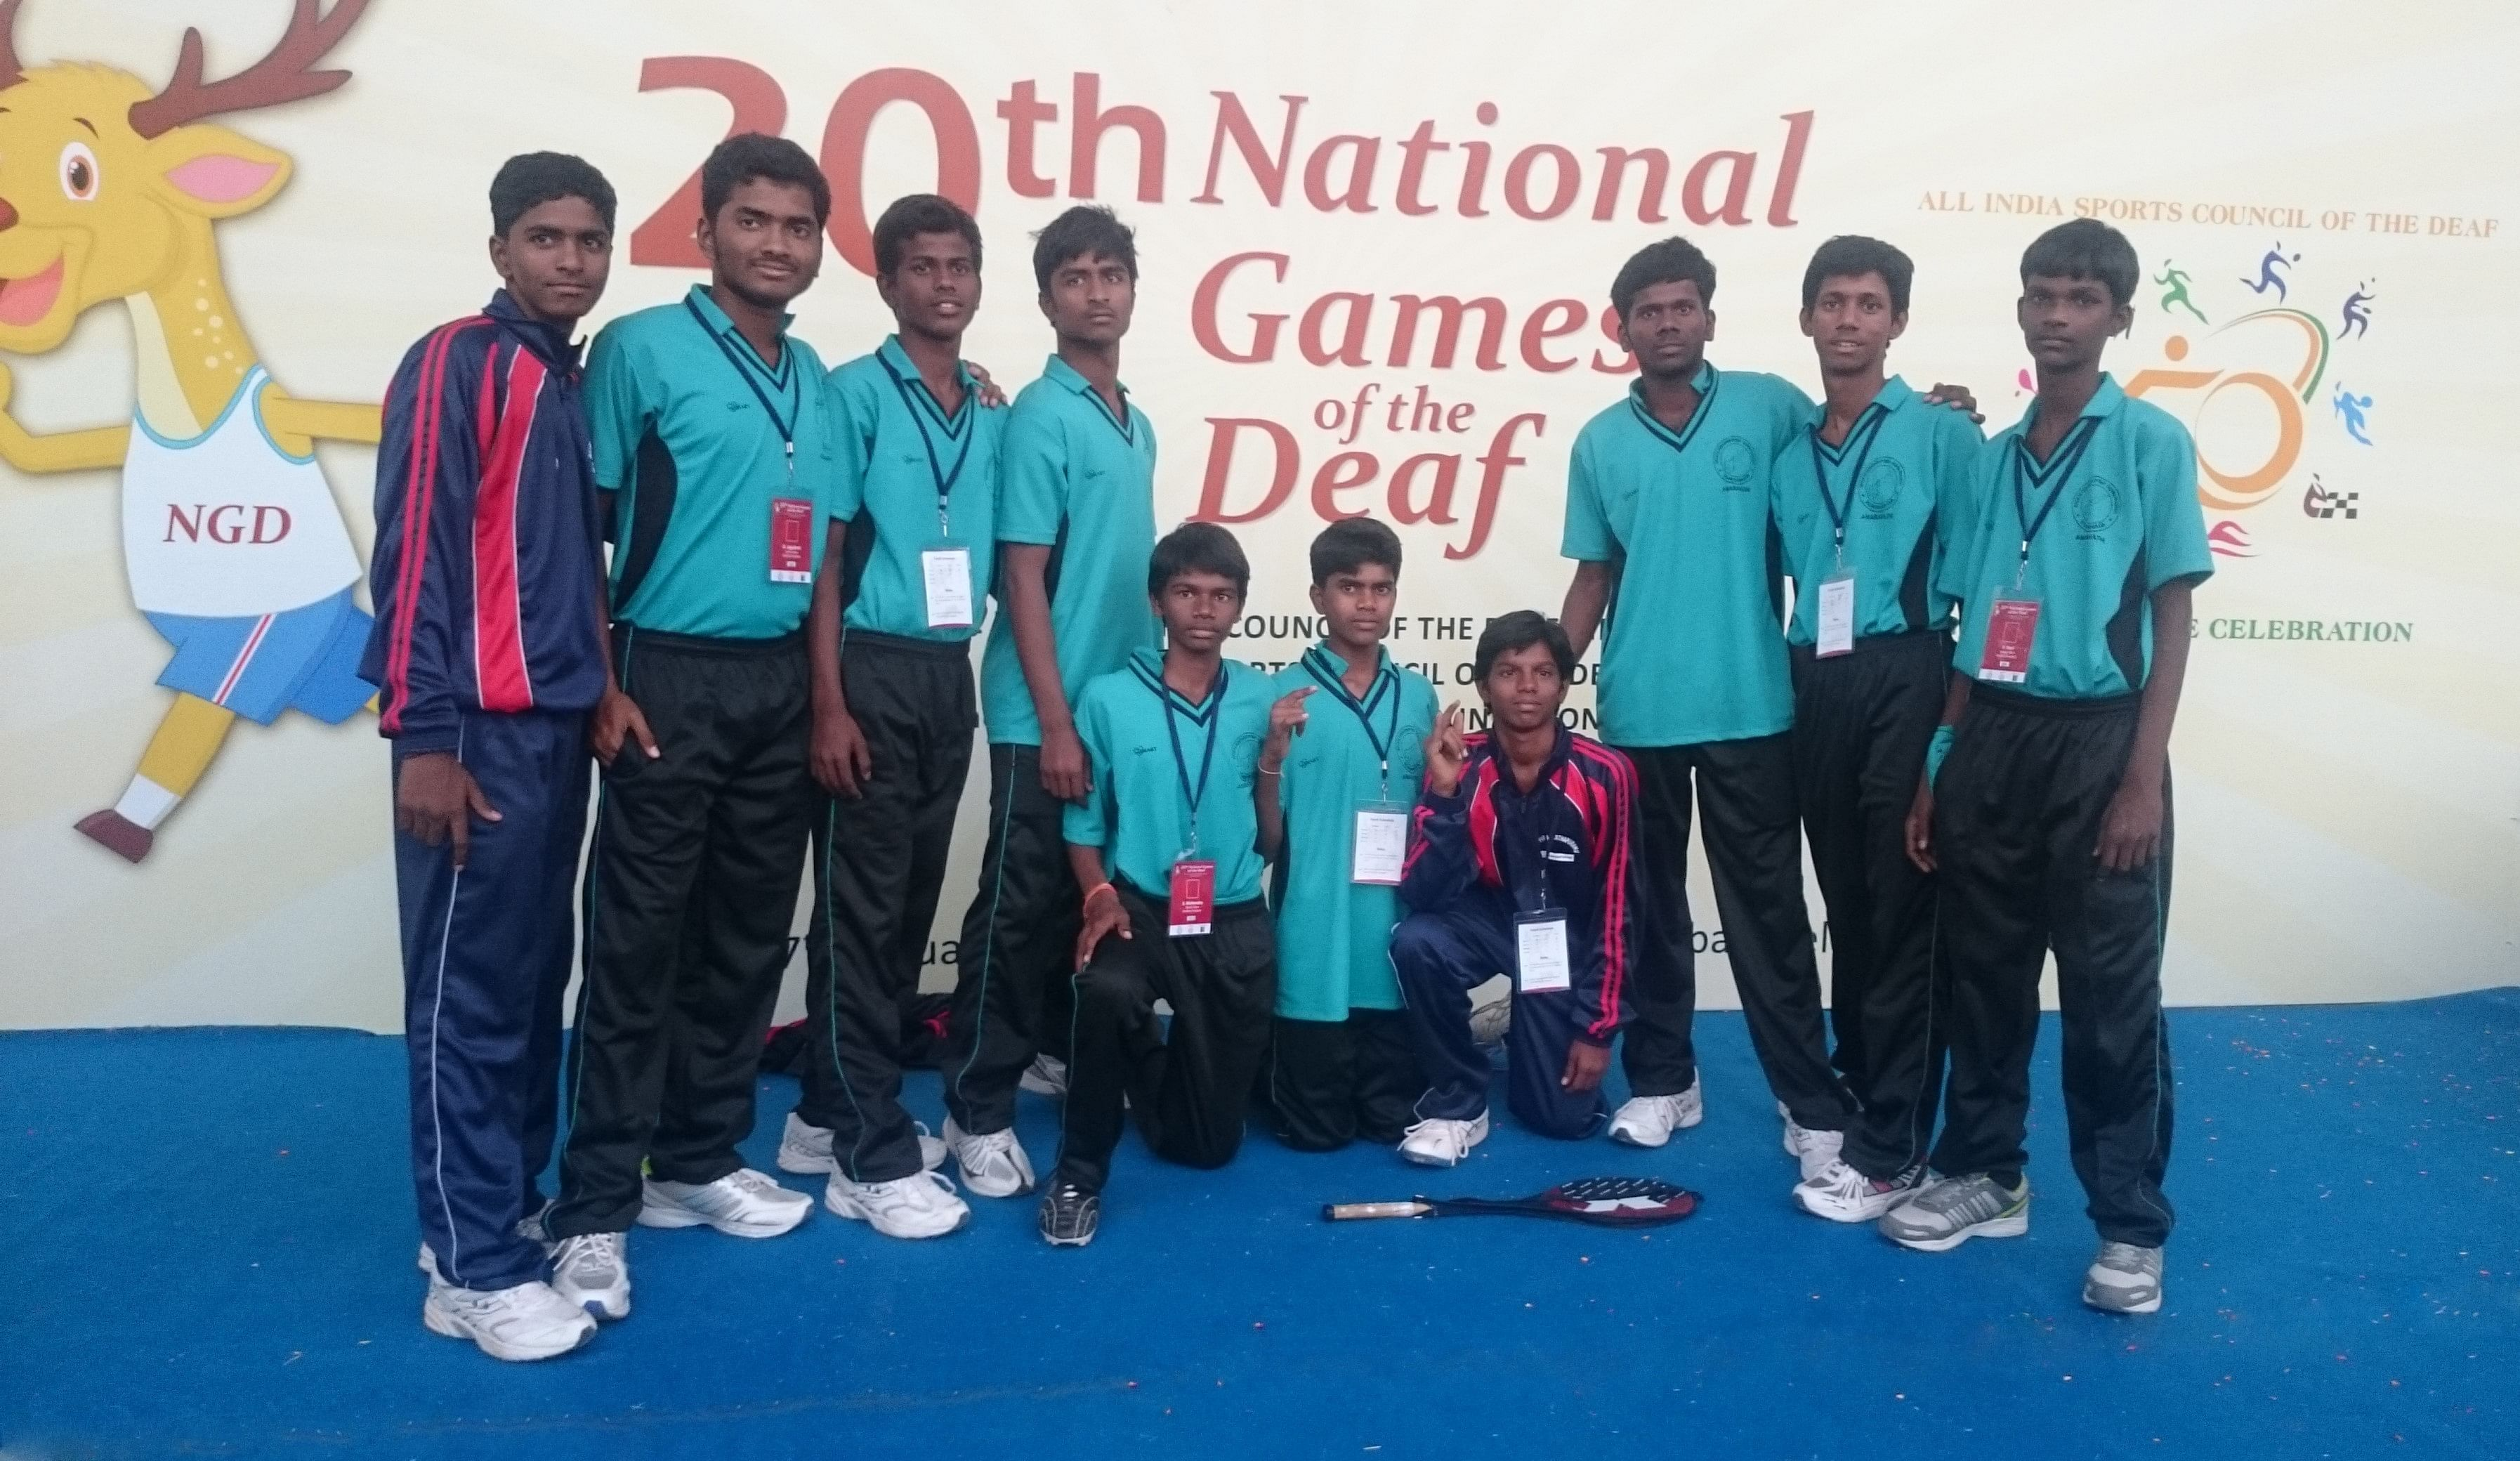 BKS Team at the 20th National Games for the Deaf in Hyderabad